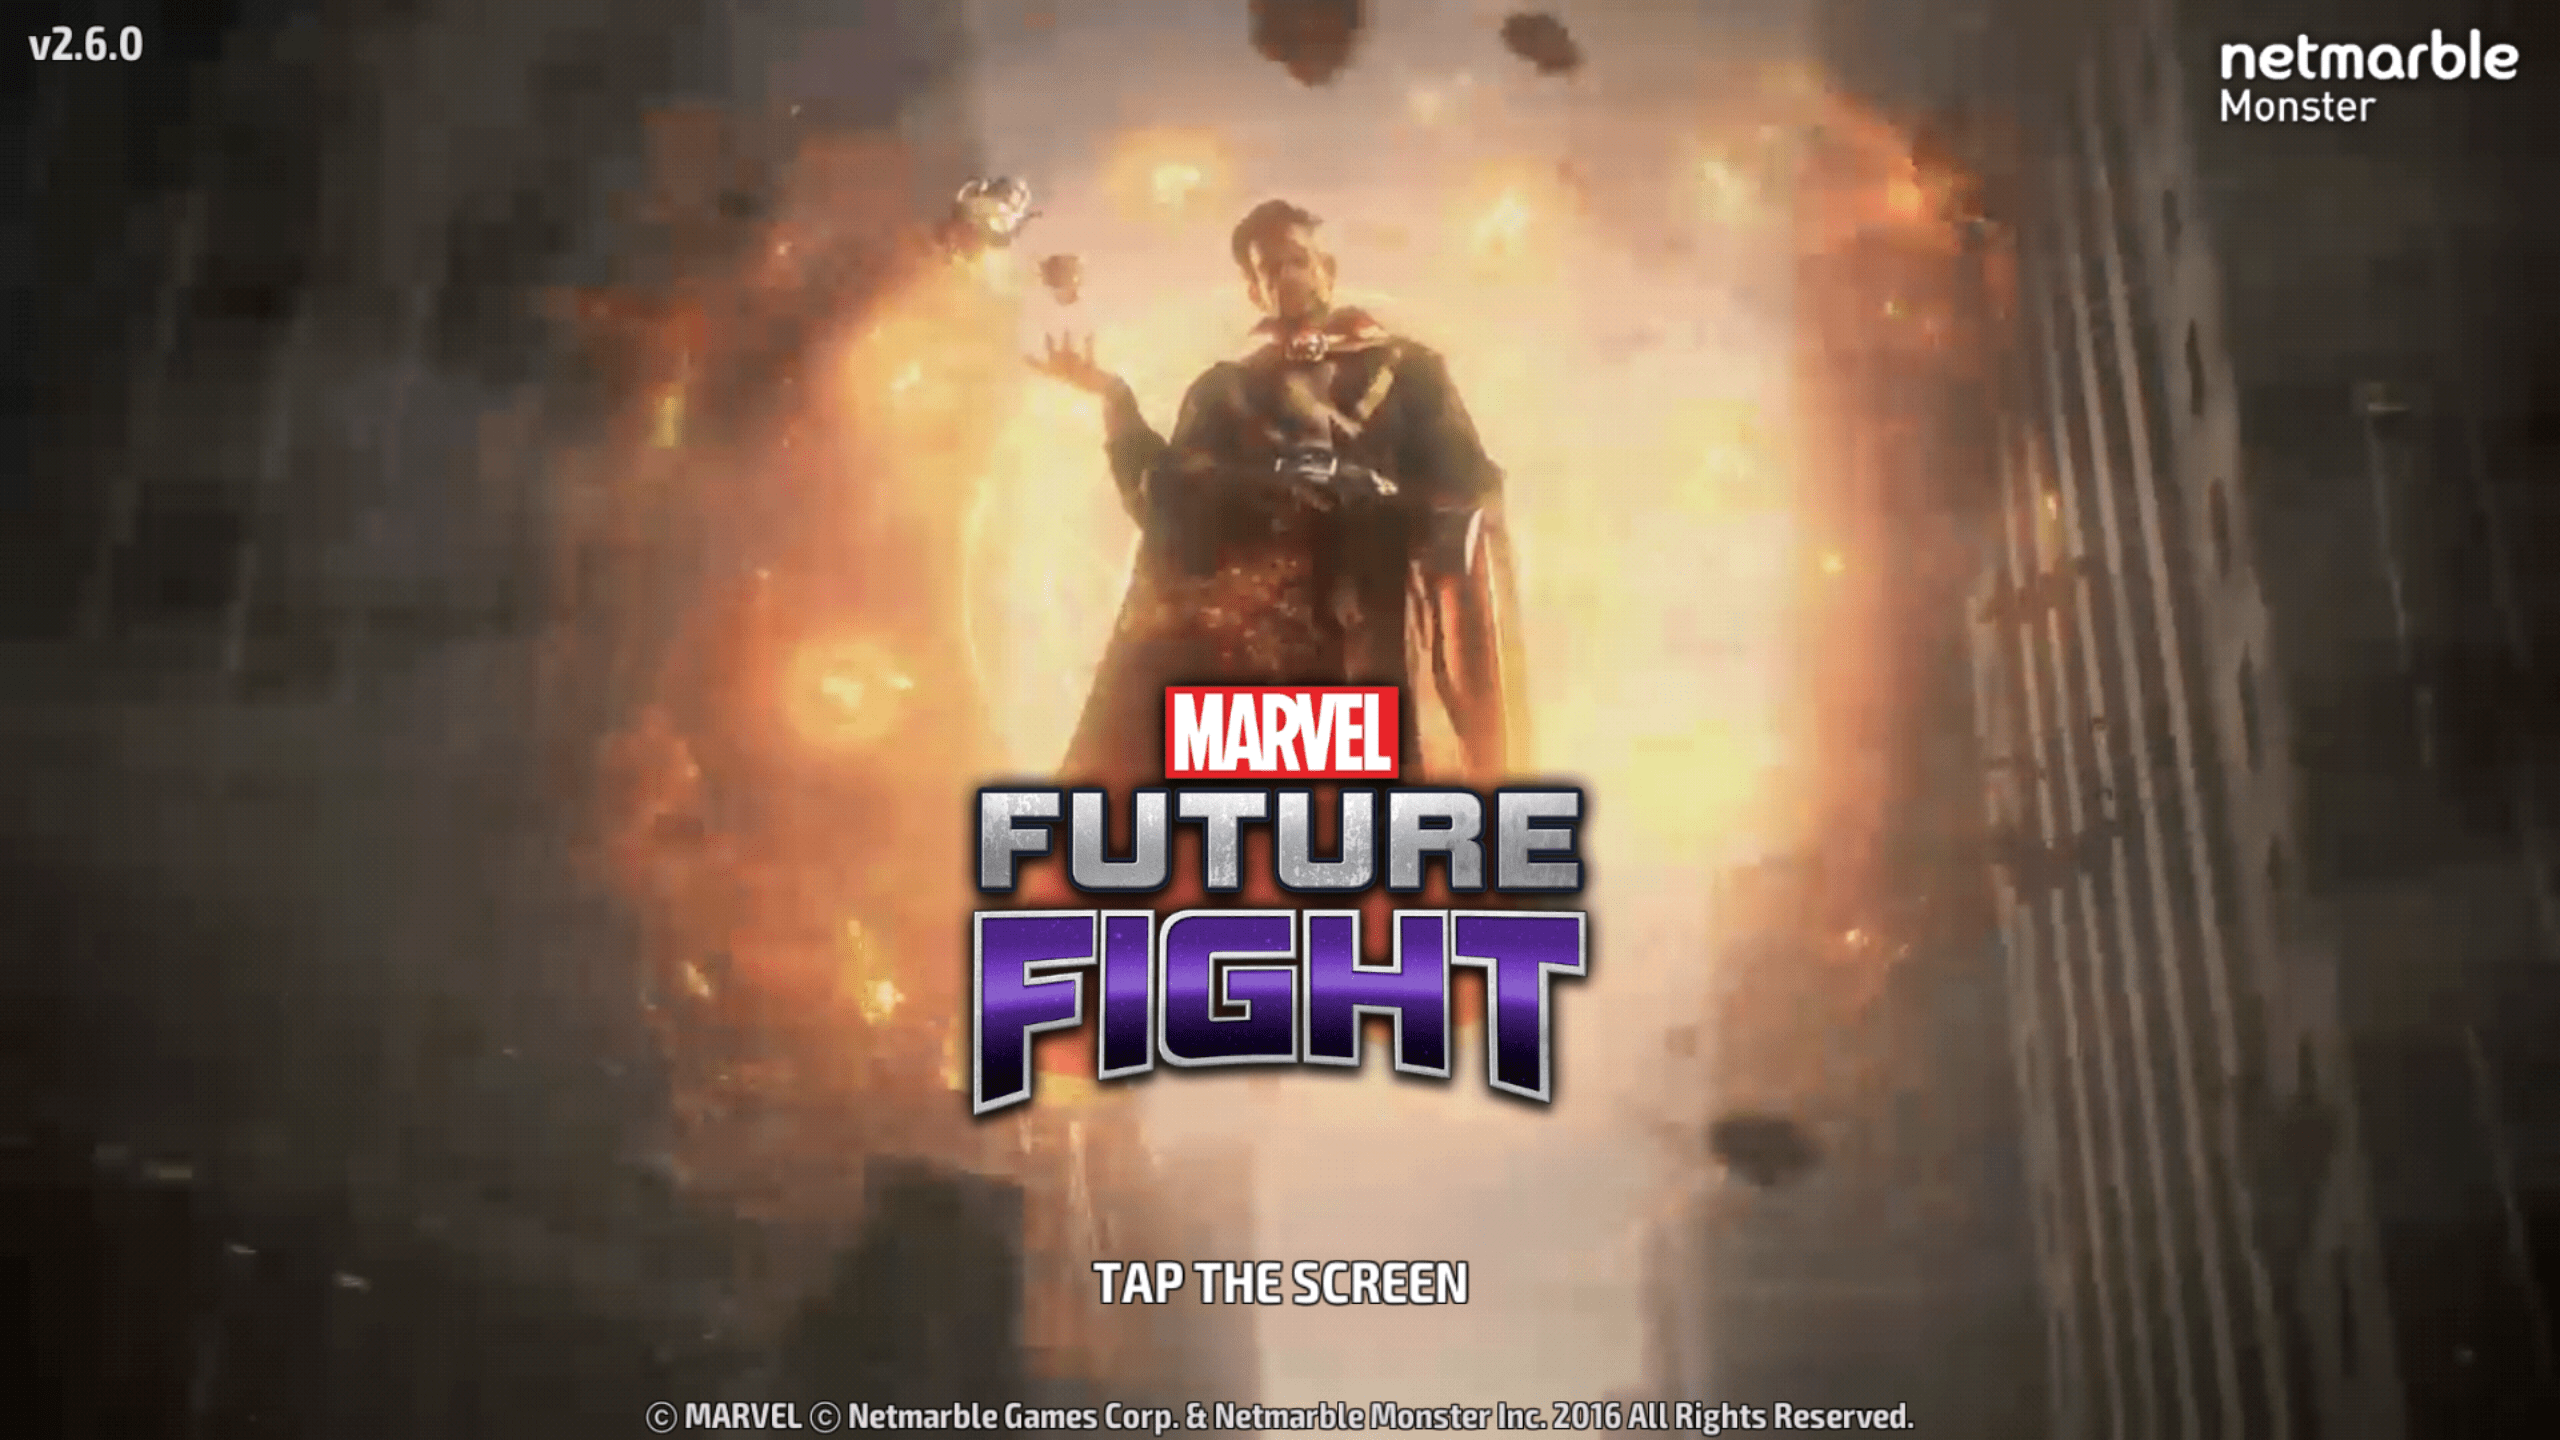 Marvel Future Fight A Game That Does Marvel Justice Epicdroid